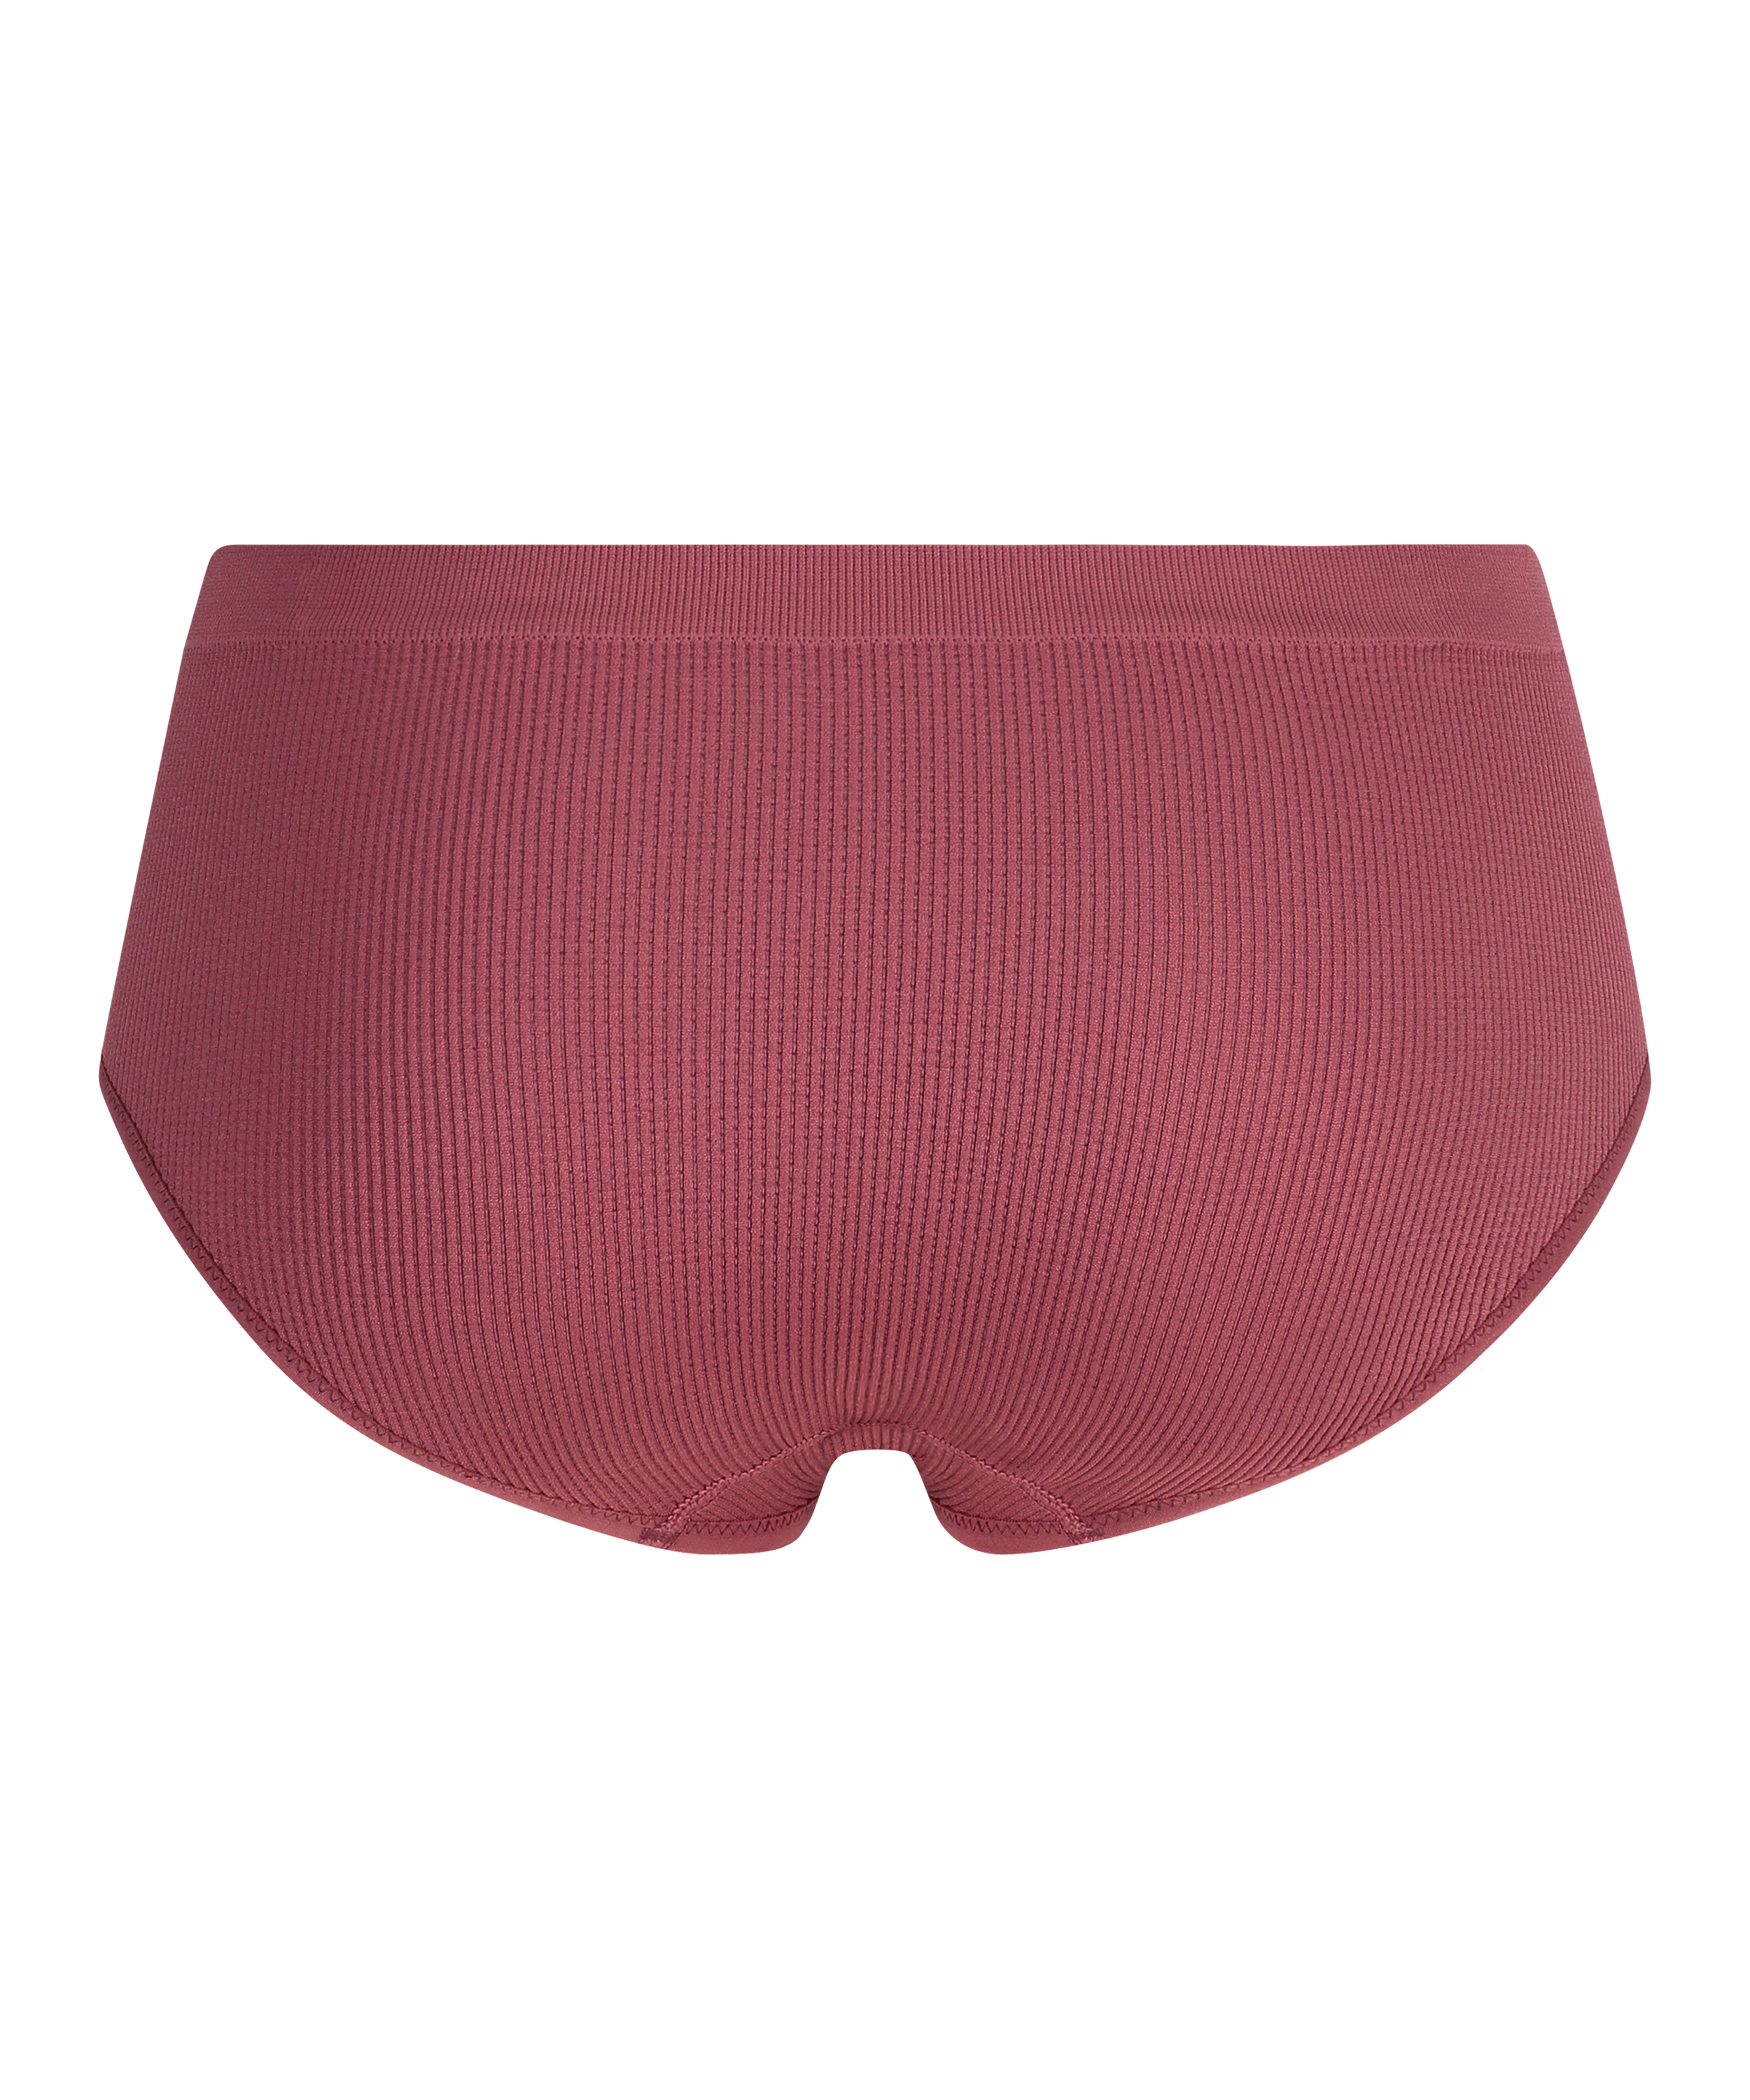 Rio Layla Invisible Knickers, Red, main